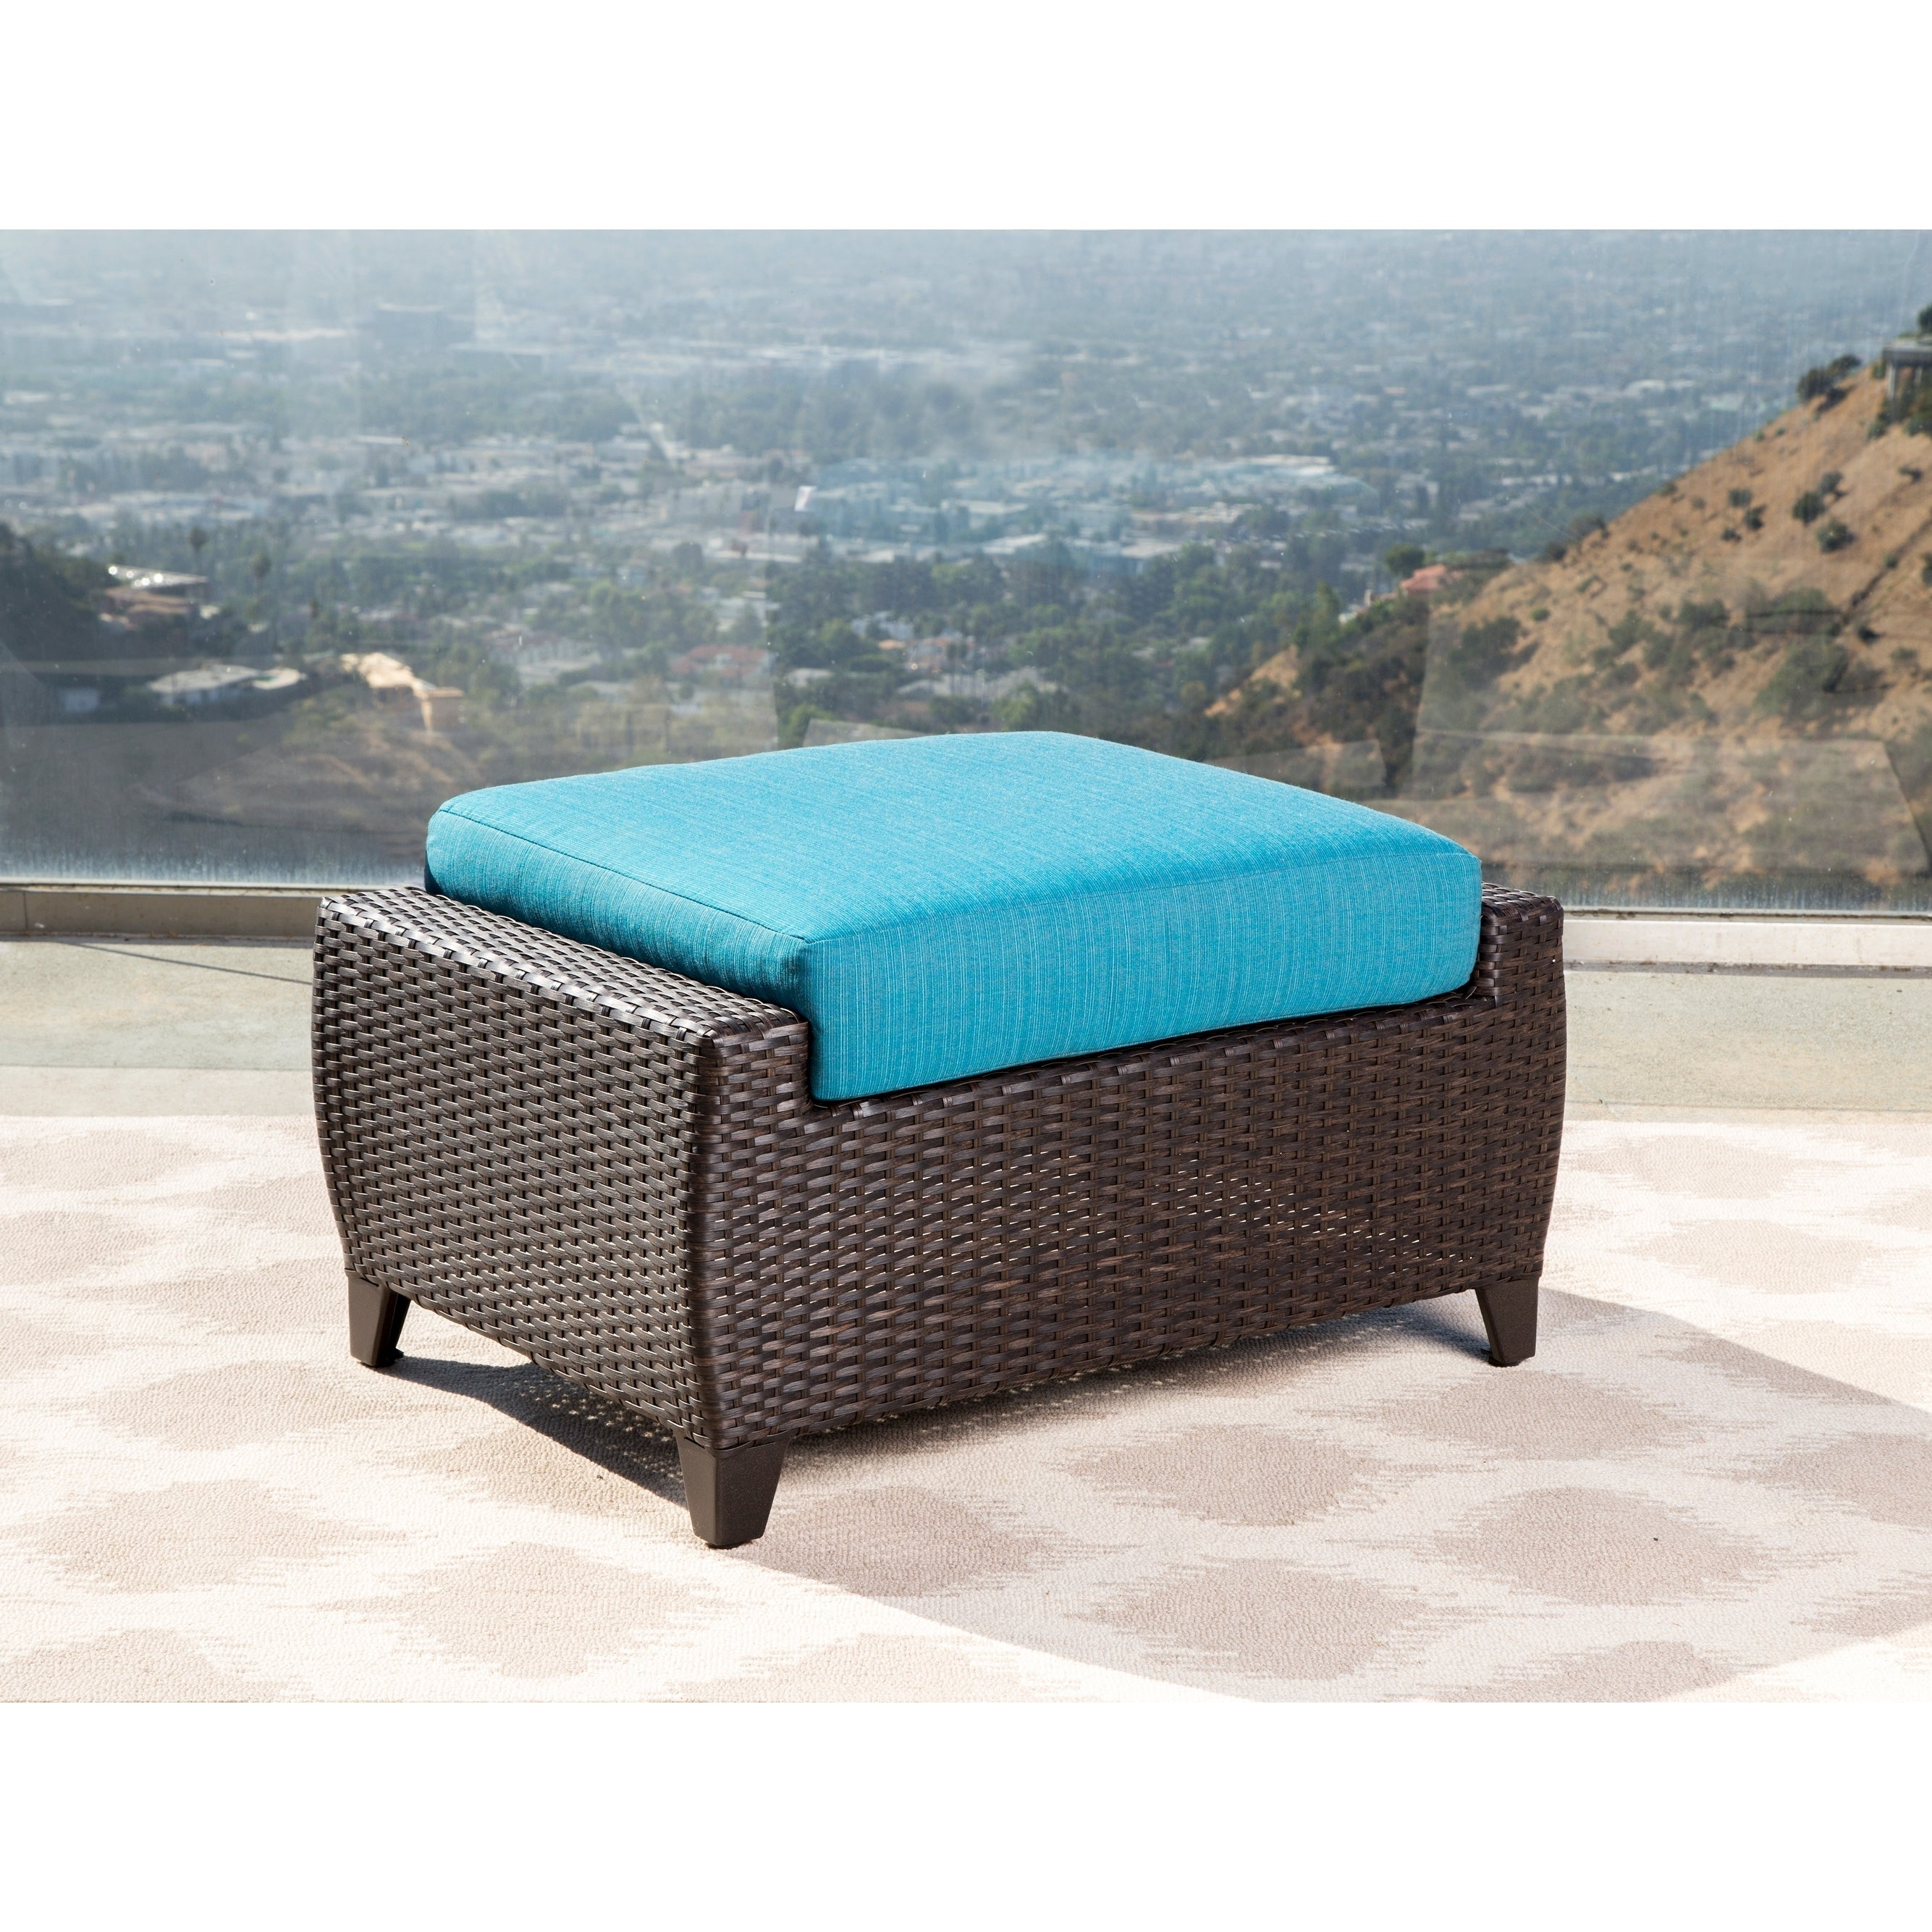 Abbyson Laguna Sunbrella Outdoor Wicker Chair And Ottoman Patio Set   Free  Shipping Today   Overstock   25549985